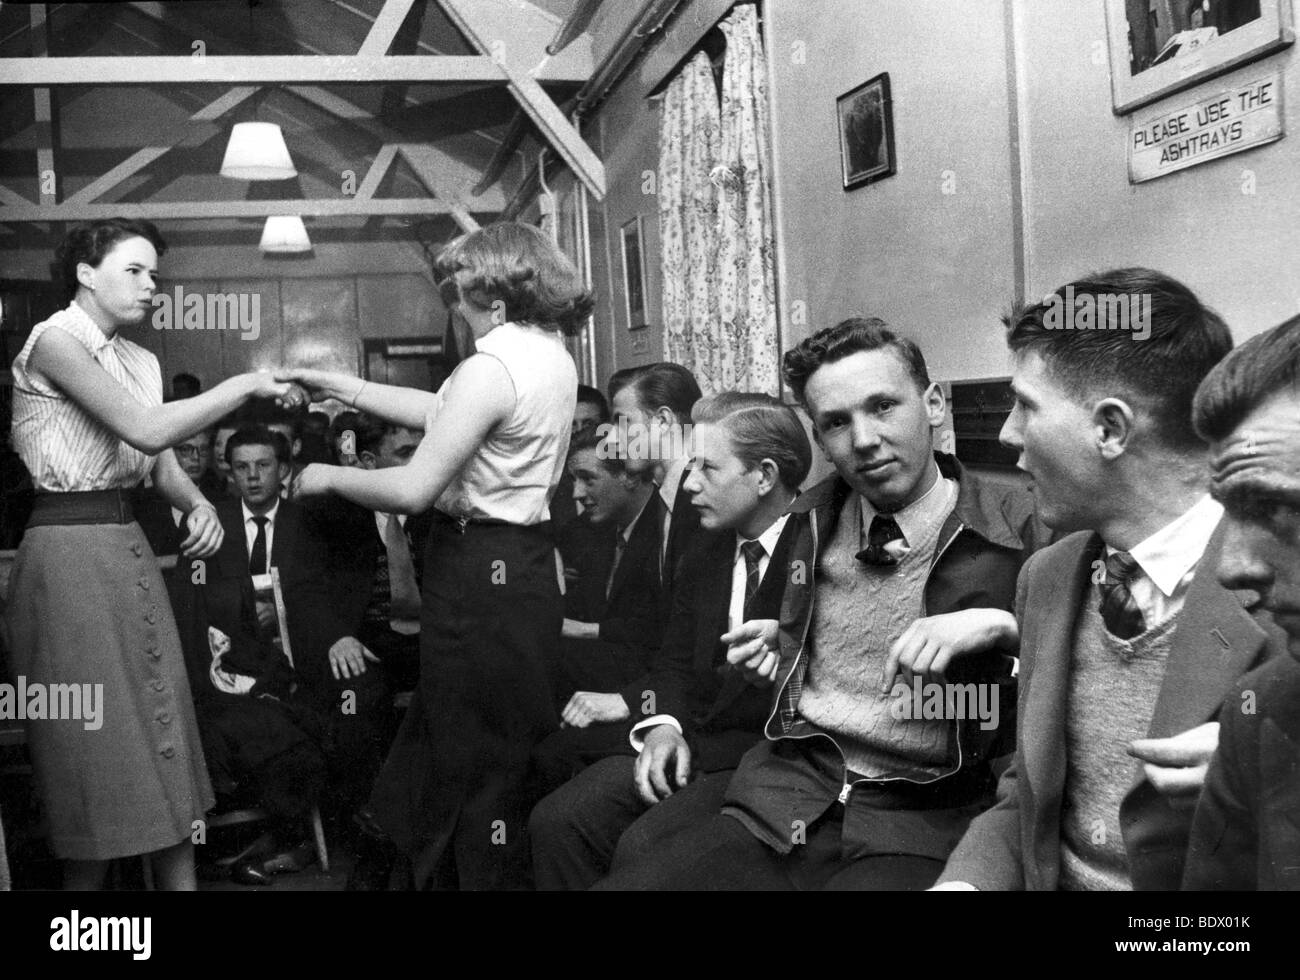 SÜDLONDON teenage Dance-Club im Jahre 1957 Stockfoto